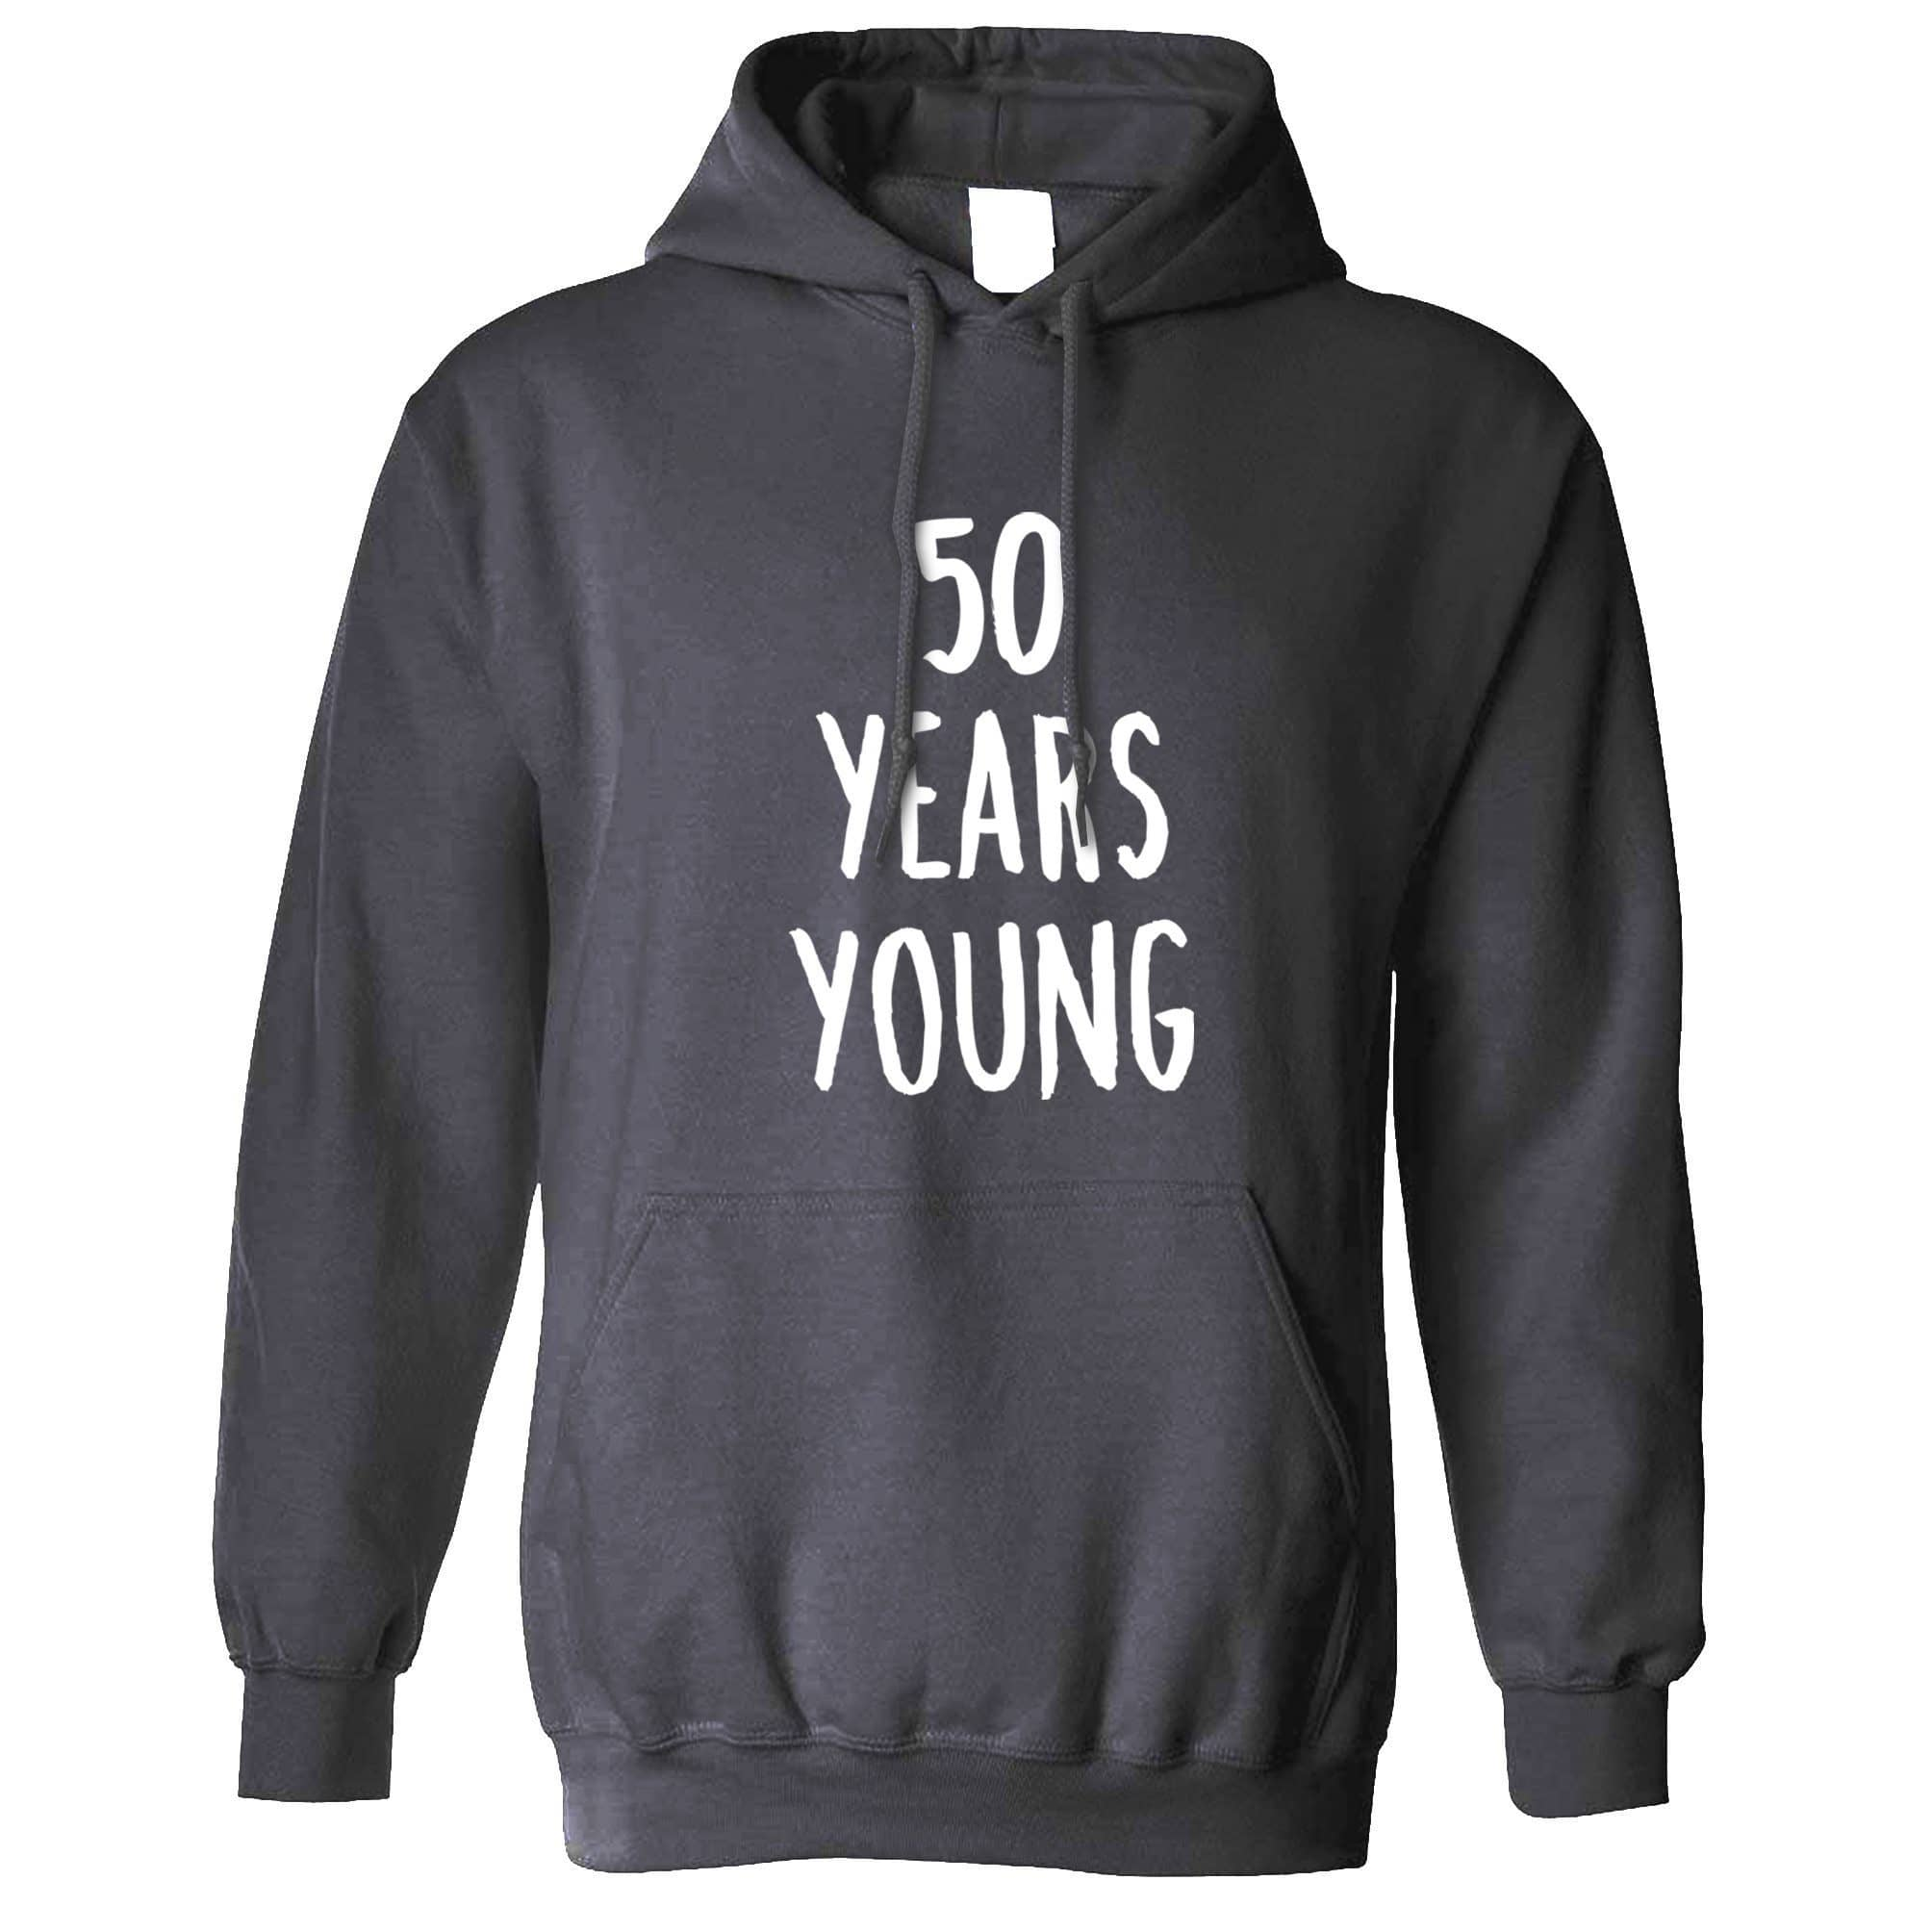 50th Birthday Joke Hoodie 50 Years Young Novelty Text Hooded Jumper